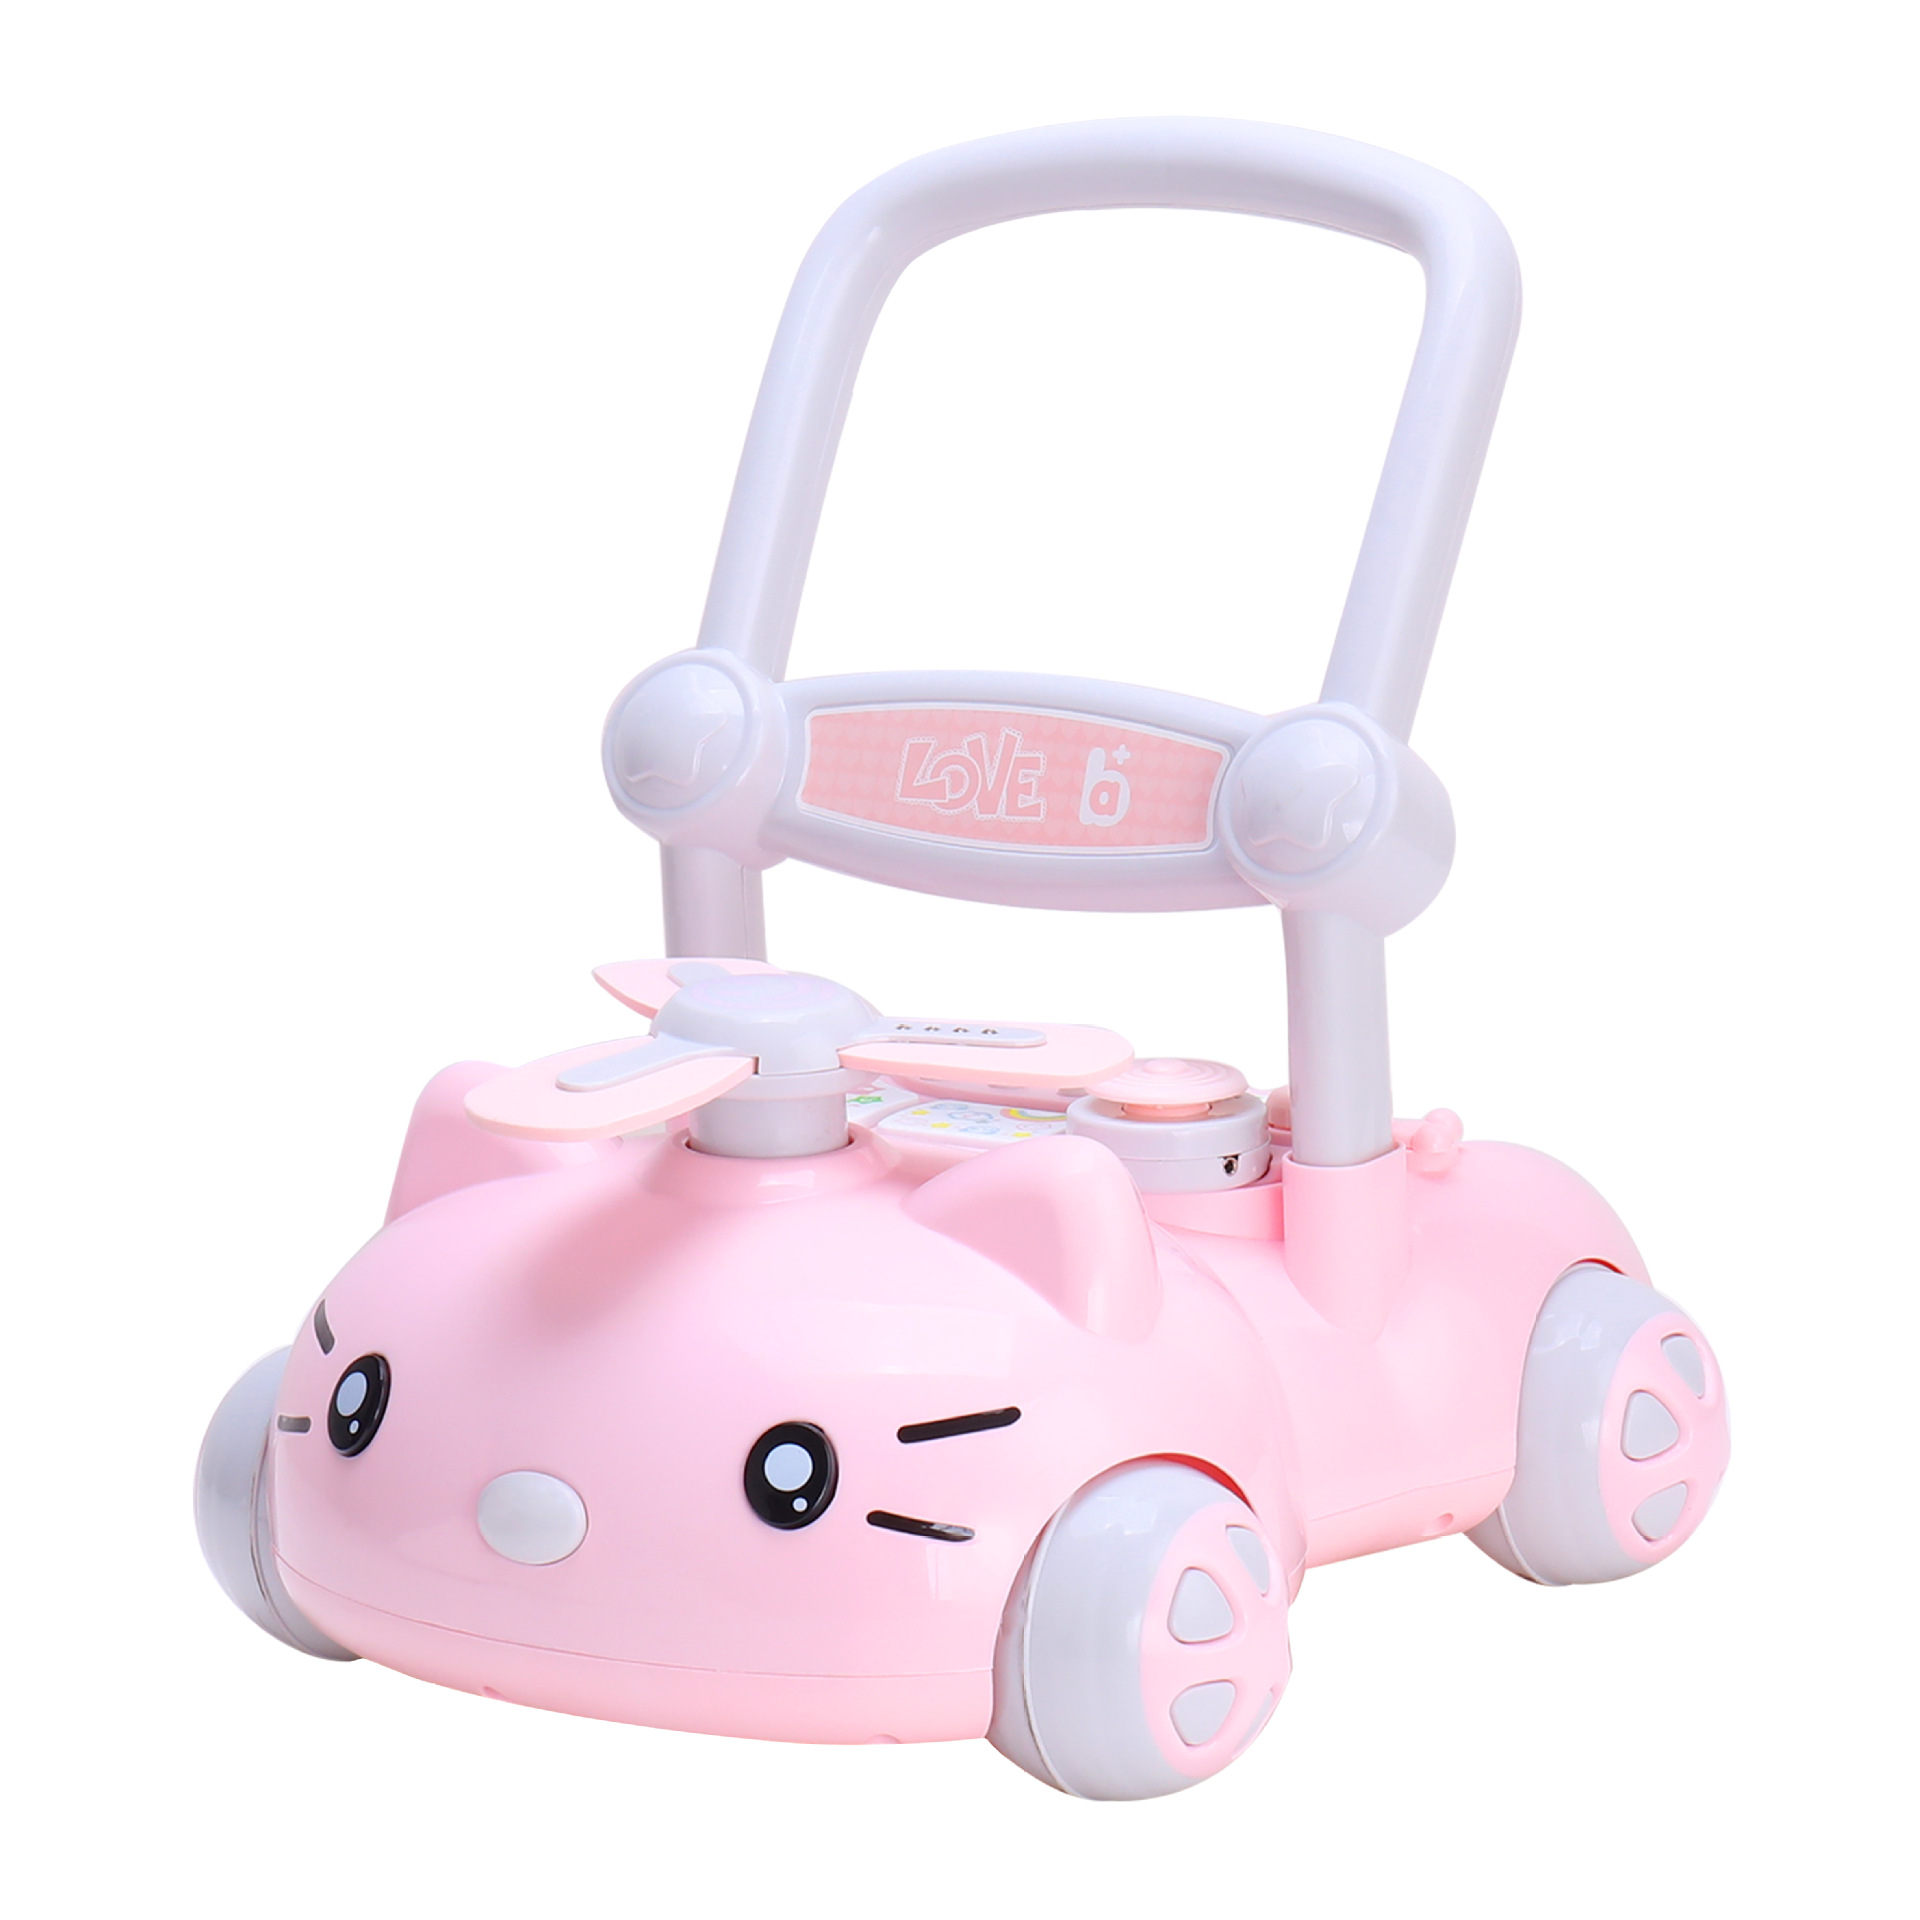 With MP3 music walkers, adjustable speed trolley, rollover proof baby walkers